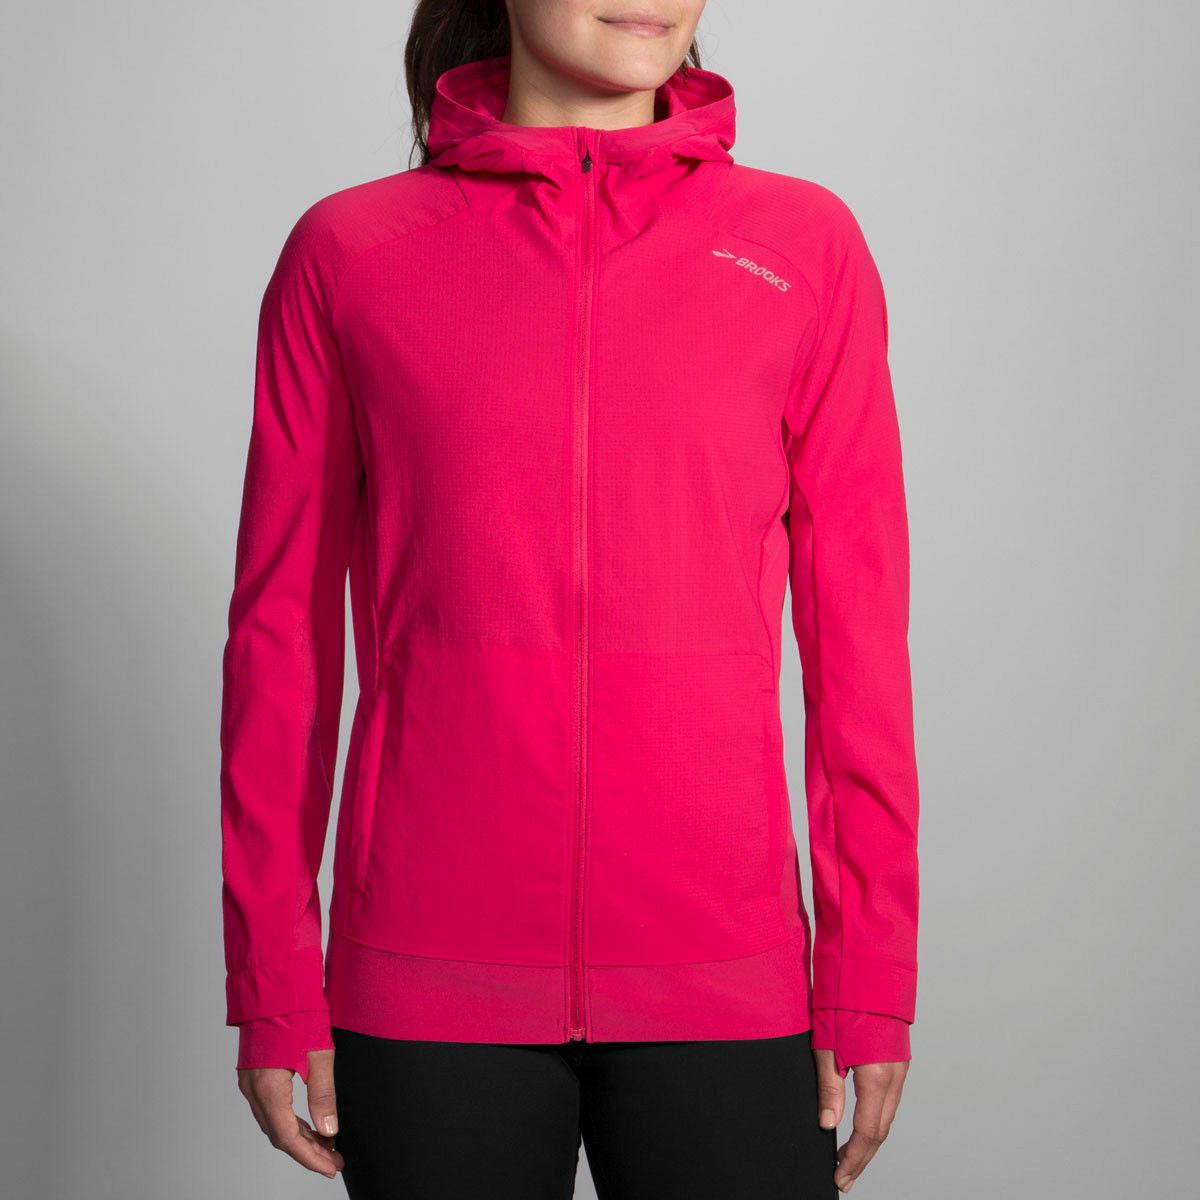 8aa7c60223c14 Winter Jackets for Running